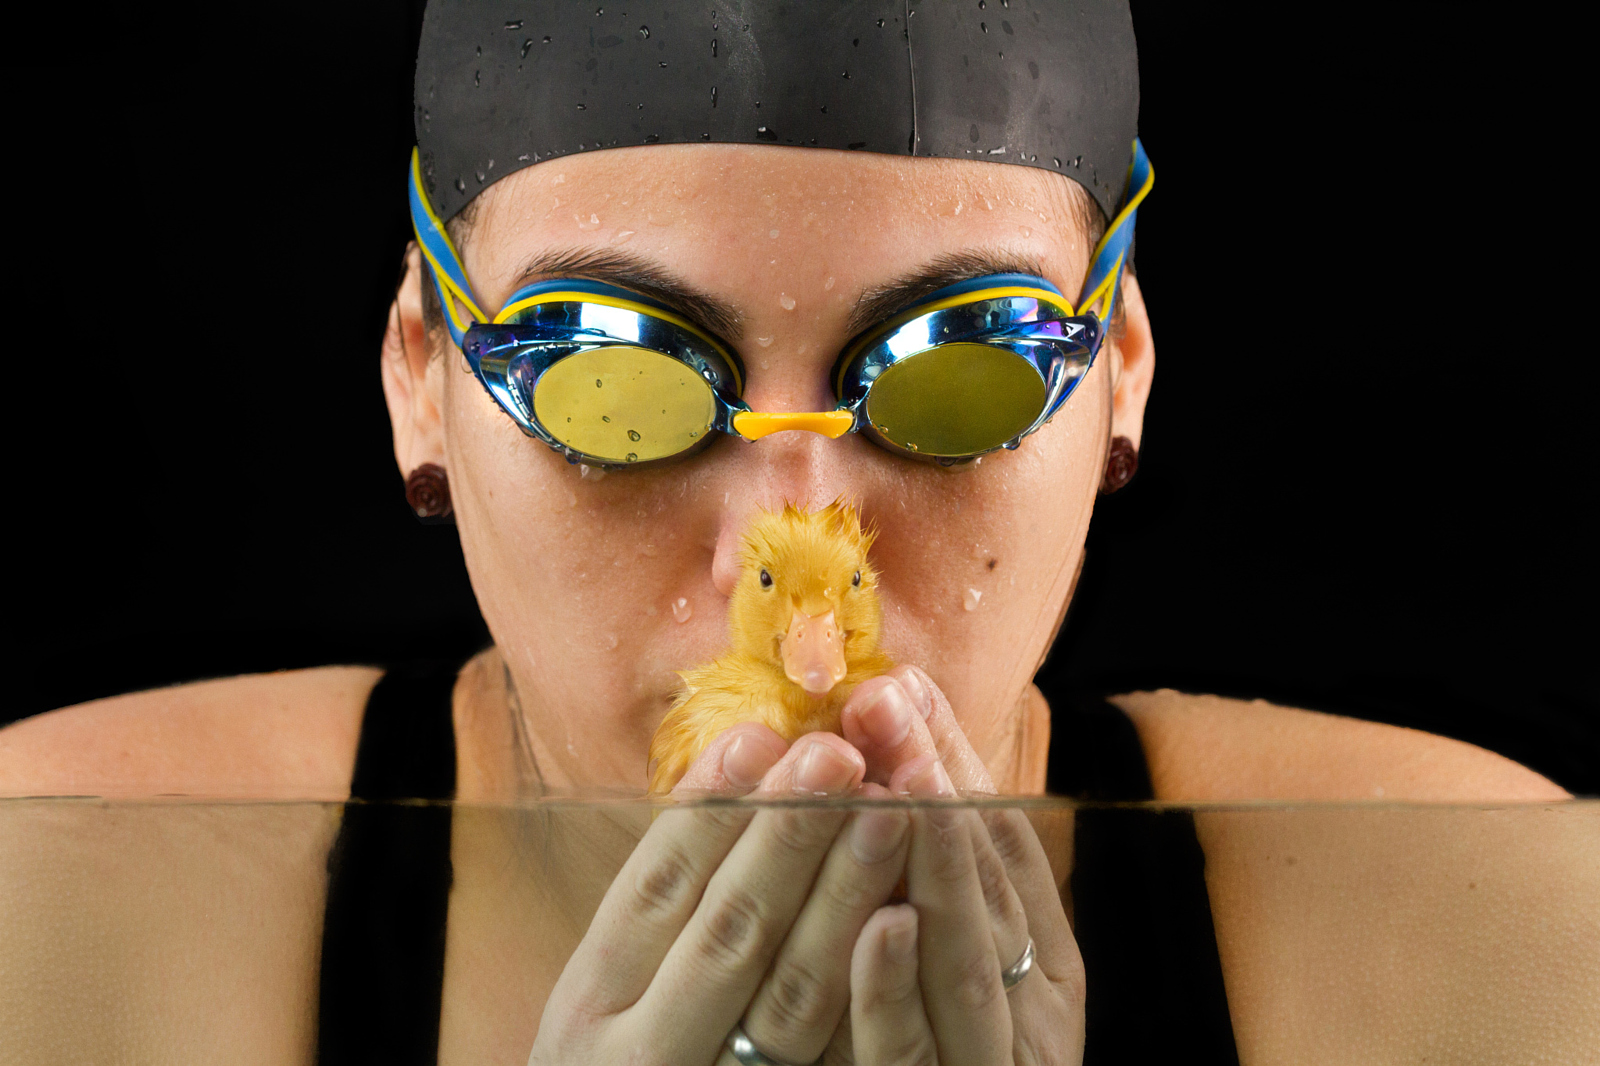 The Story & Setup Behind these Sweet Portraits of a Swimmer and Her Duckling